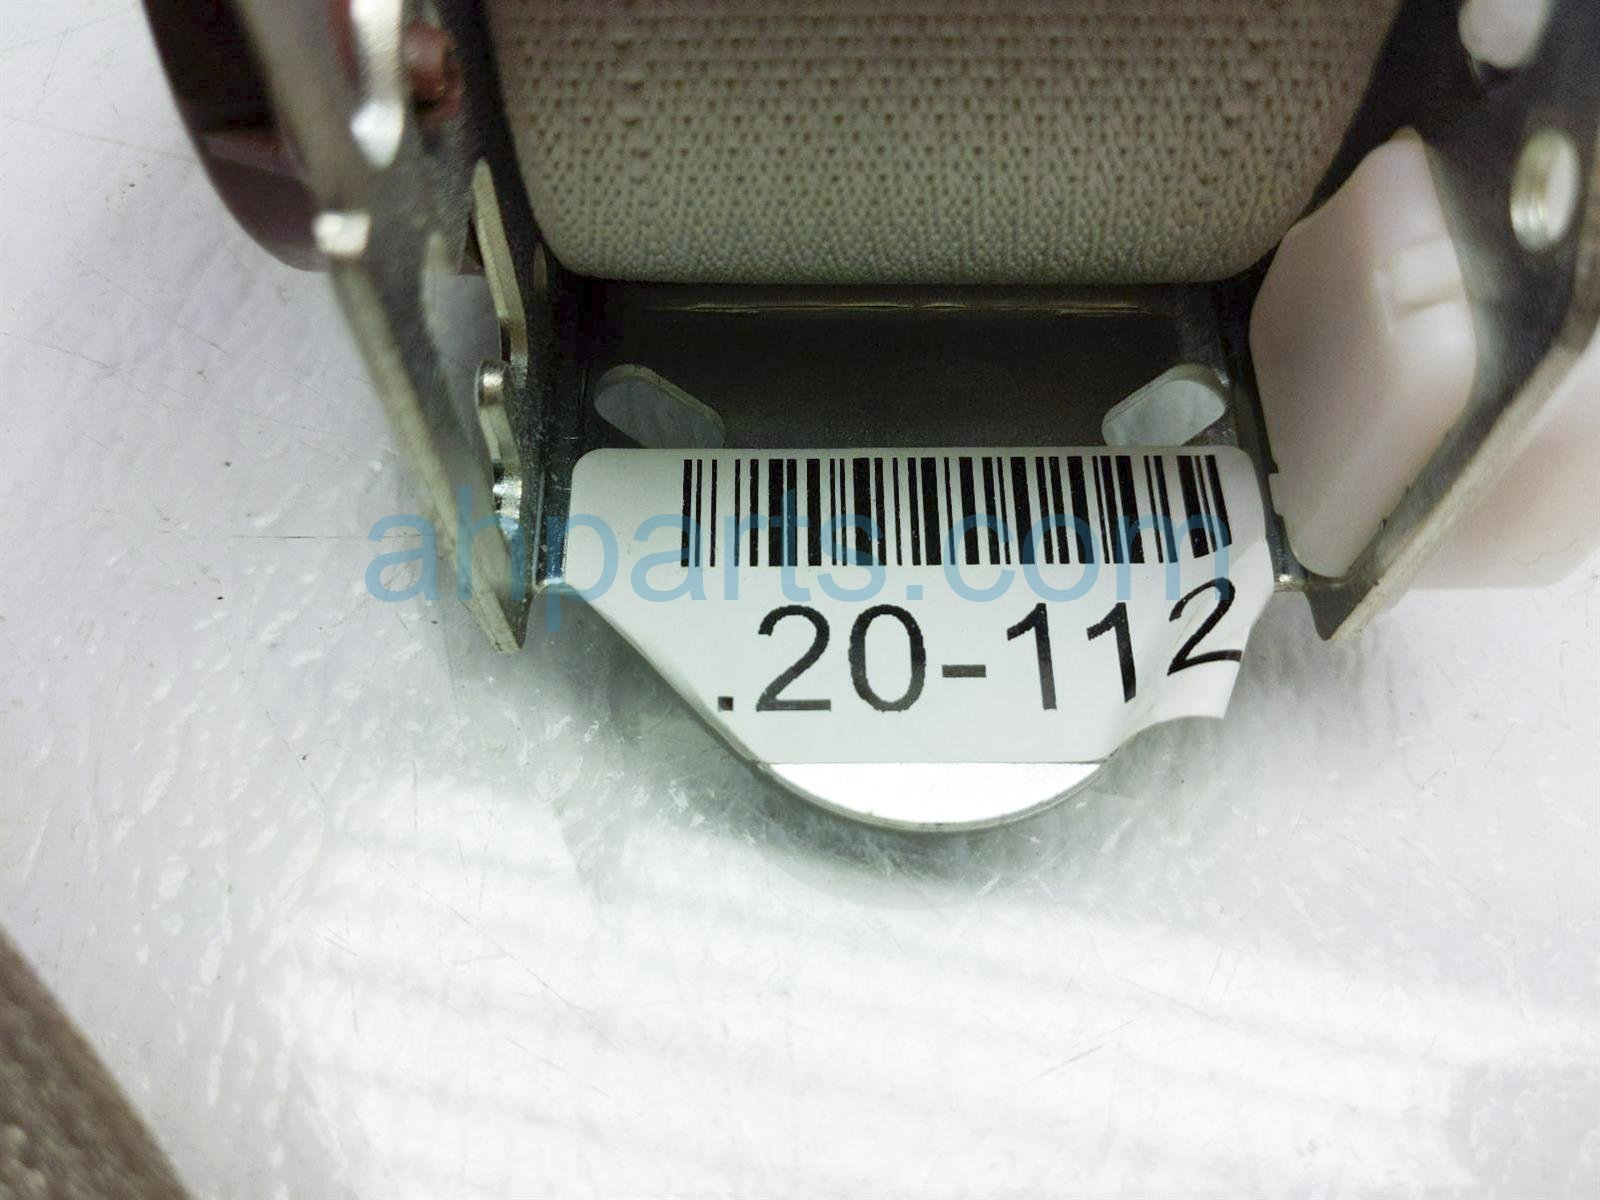 2013 Toyota Sienna Rear 2nd Row Driver Seat Belt   Tan 73370 08040 B1 Replacement